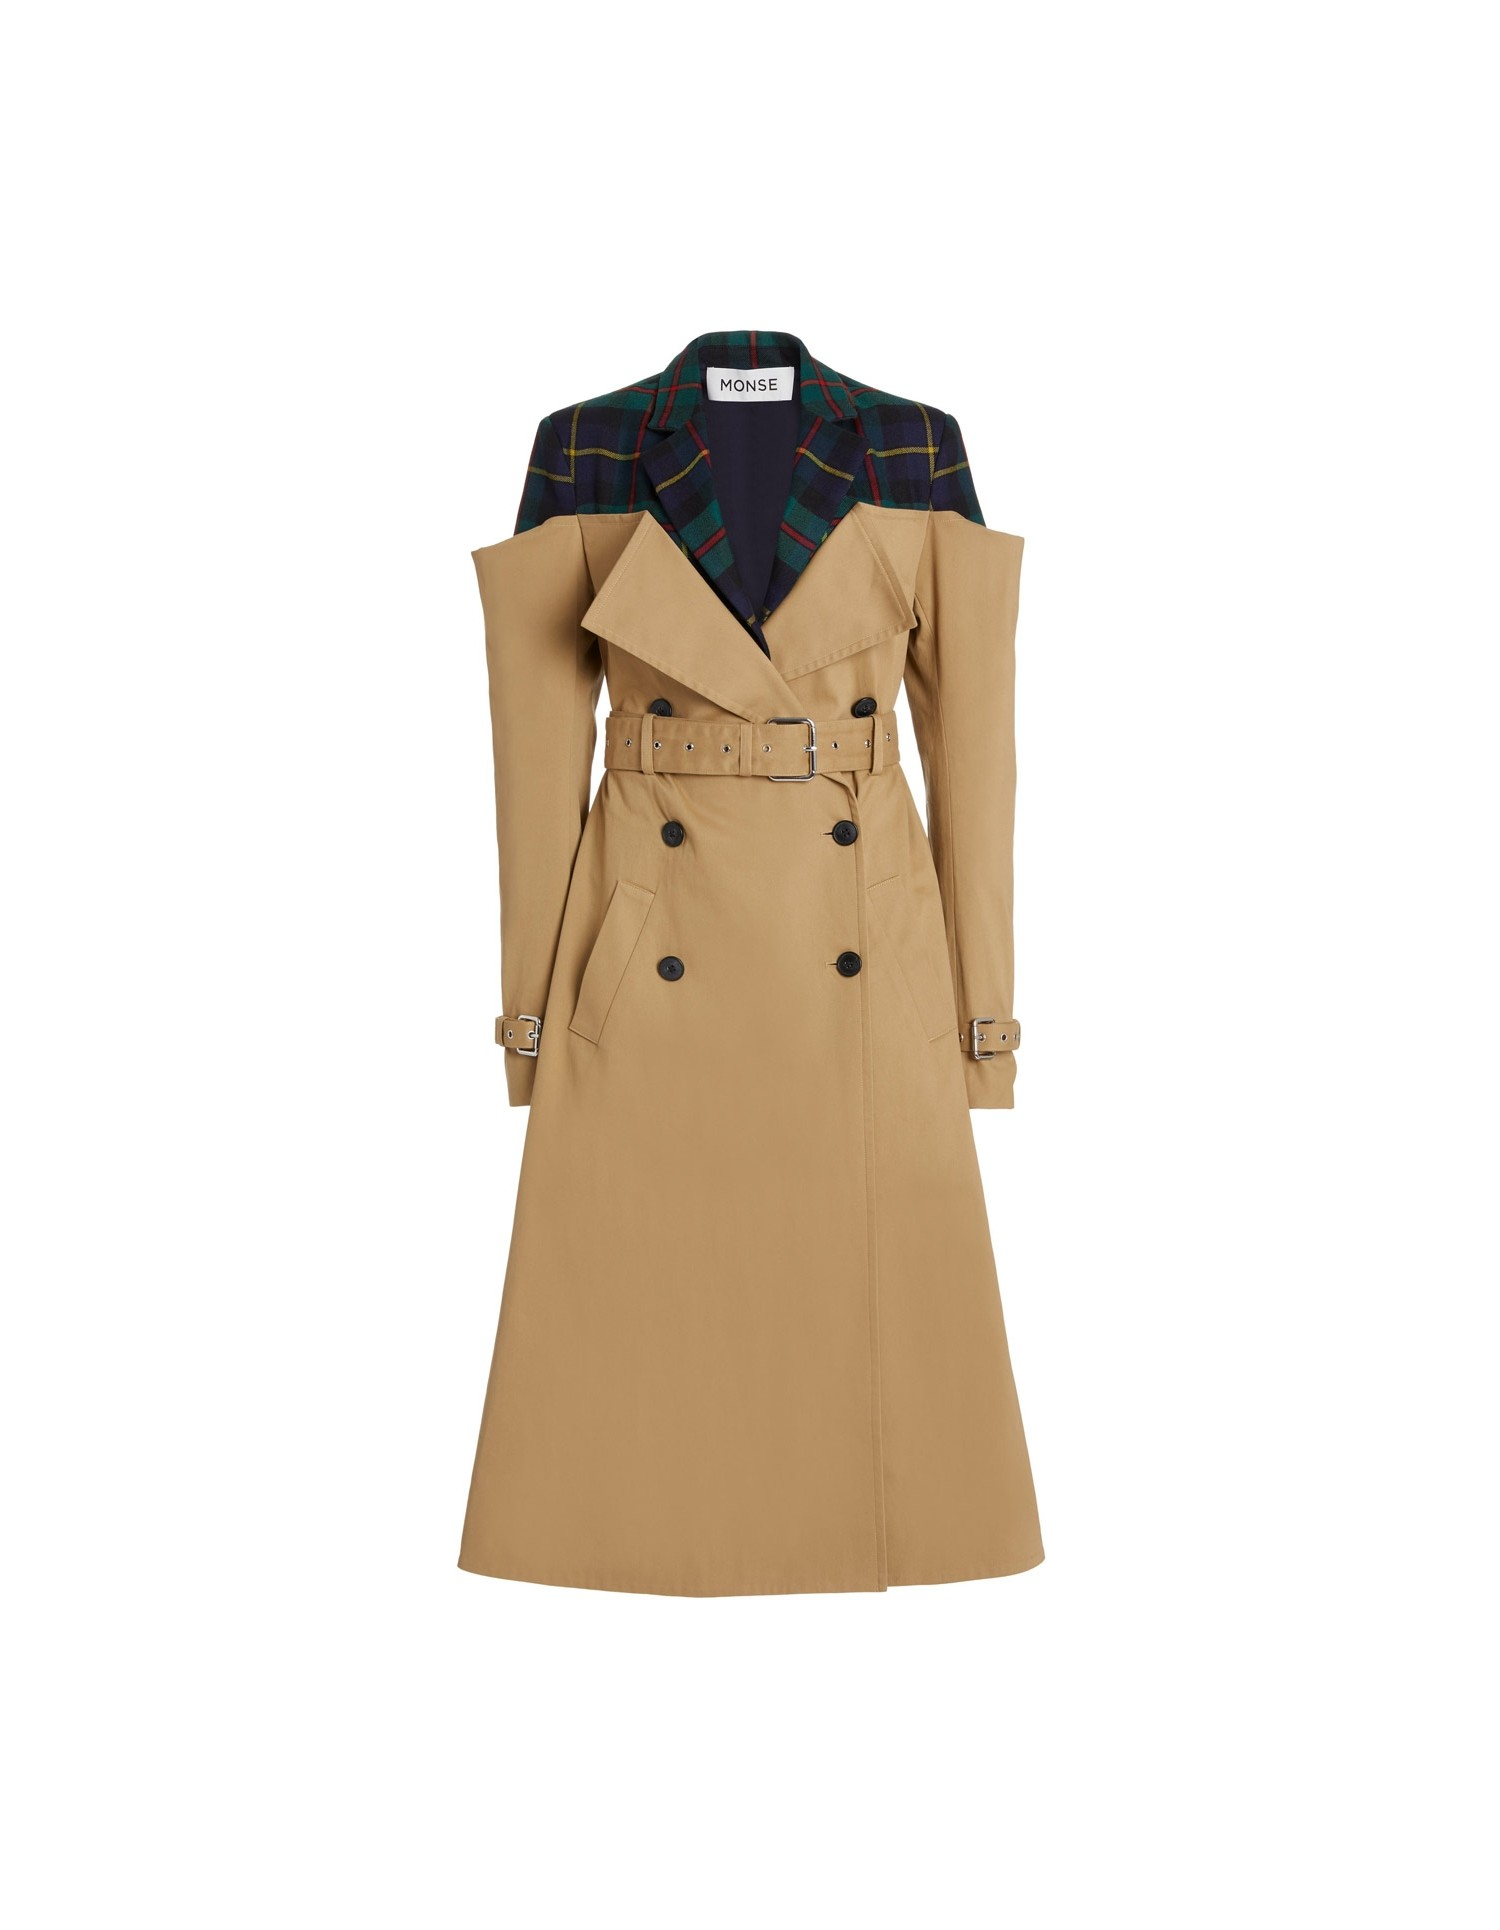 MONSE Deconstructed Trench Coat in Khaki and Multi Plaid Flat Front